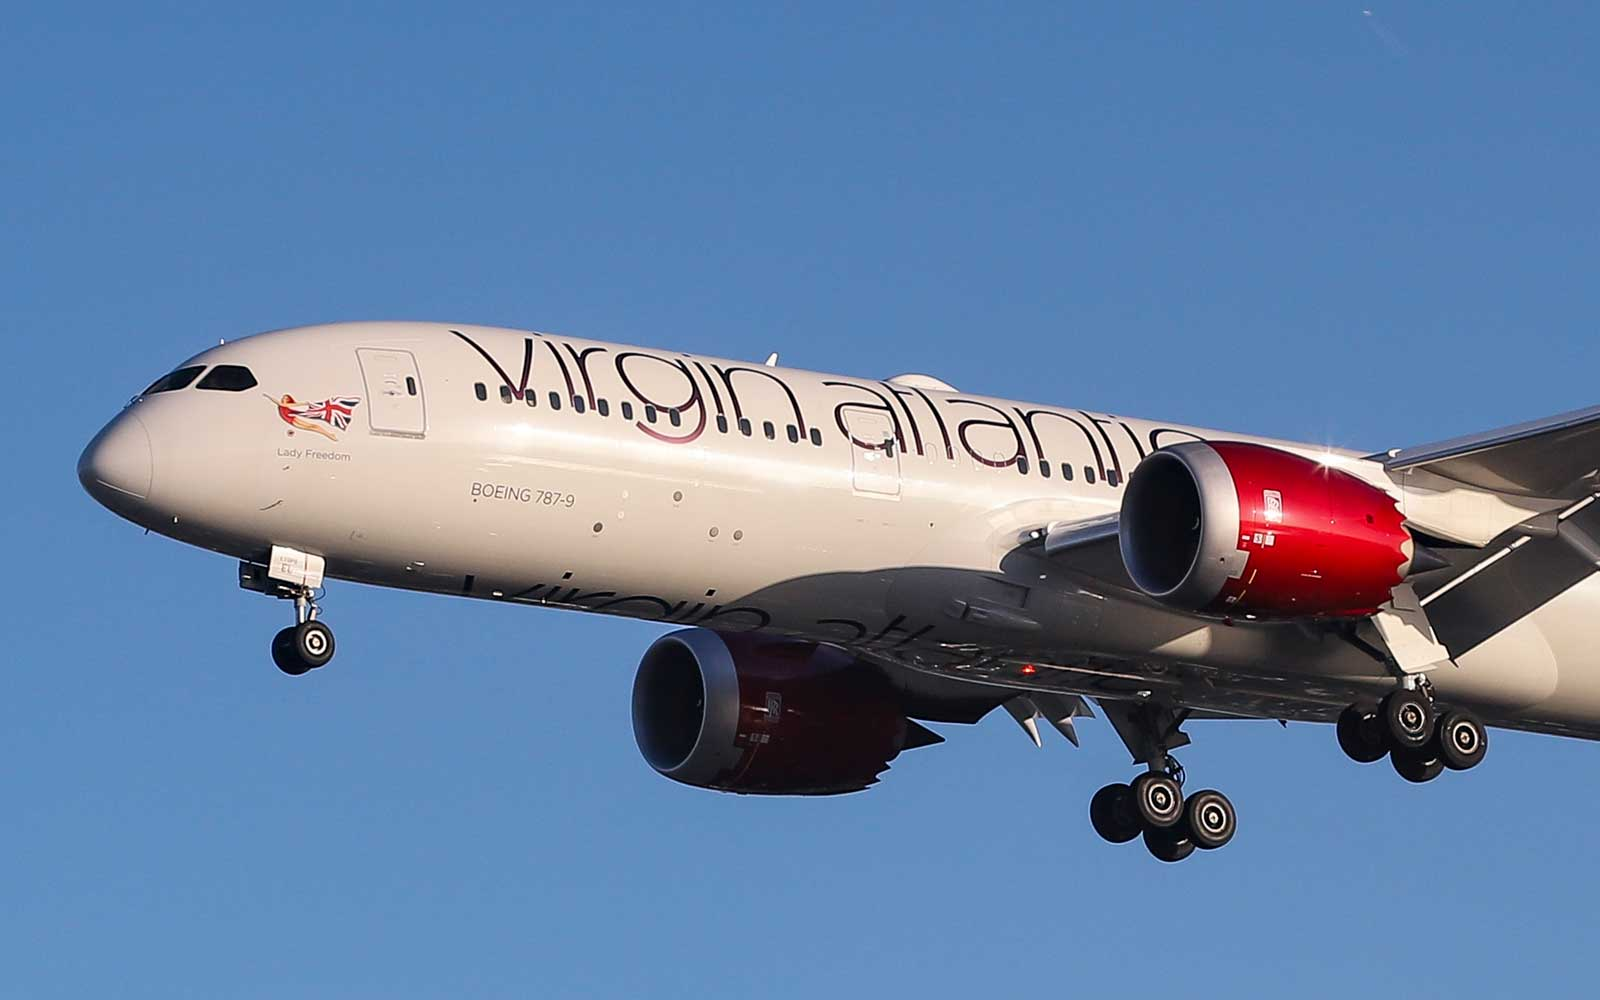 Virgin Atlantic Flight Quarantined After Dozens of Passengers Experience Nausea, Coughing Fits